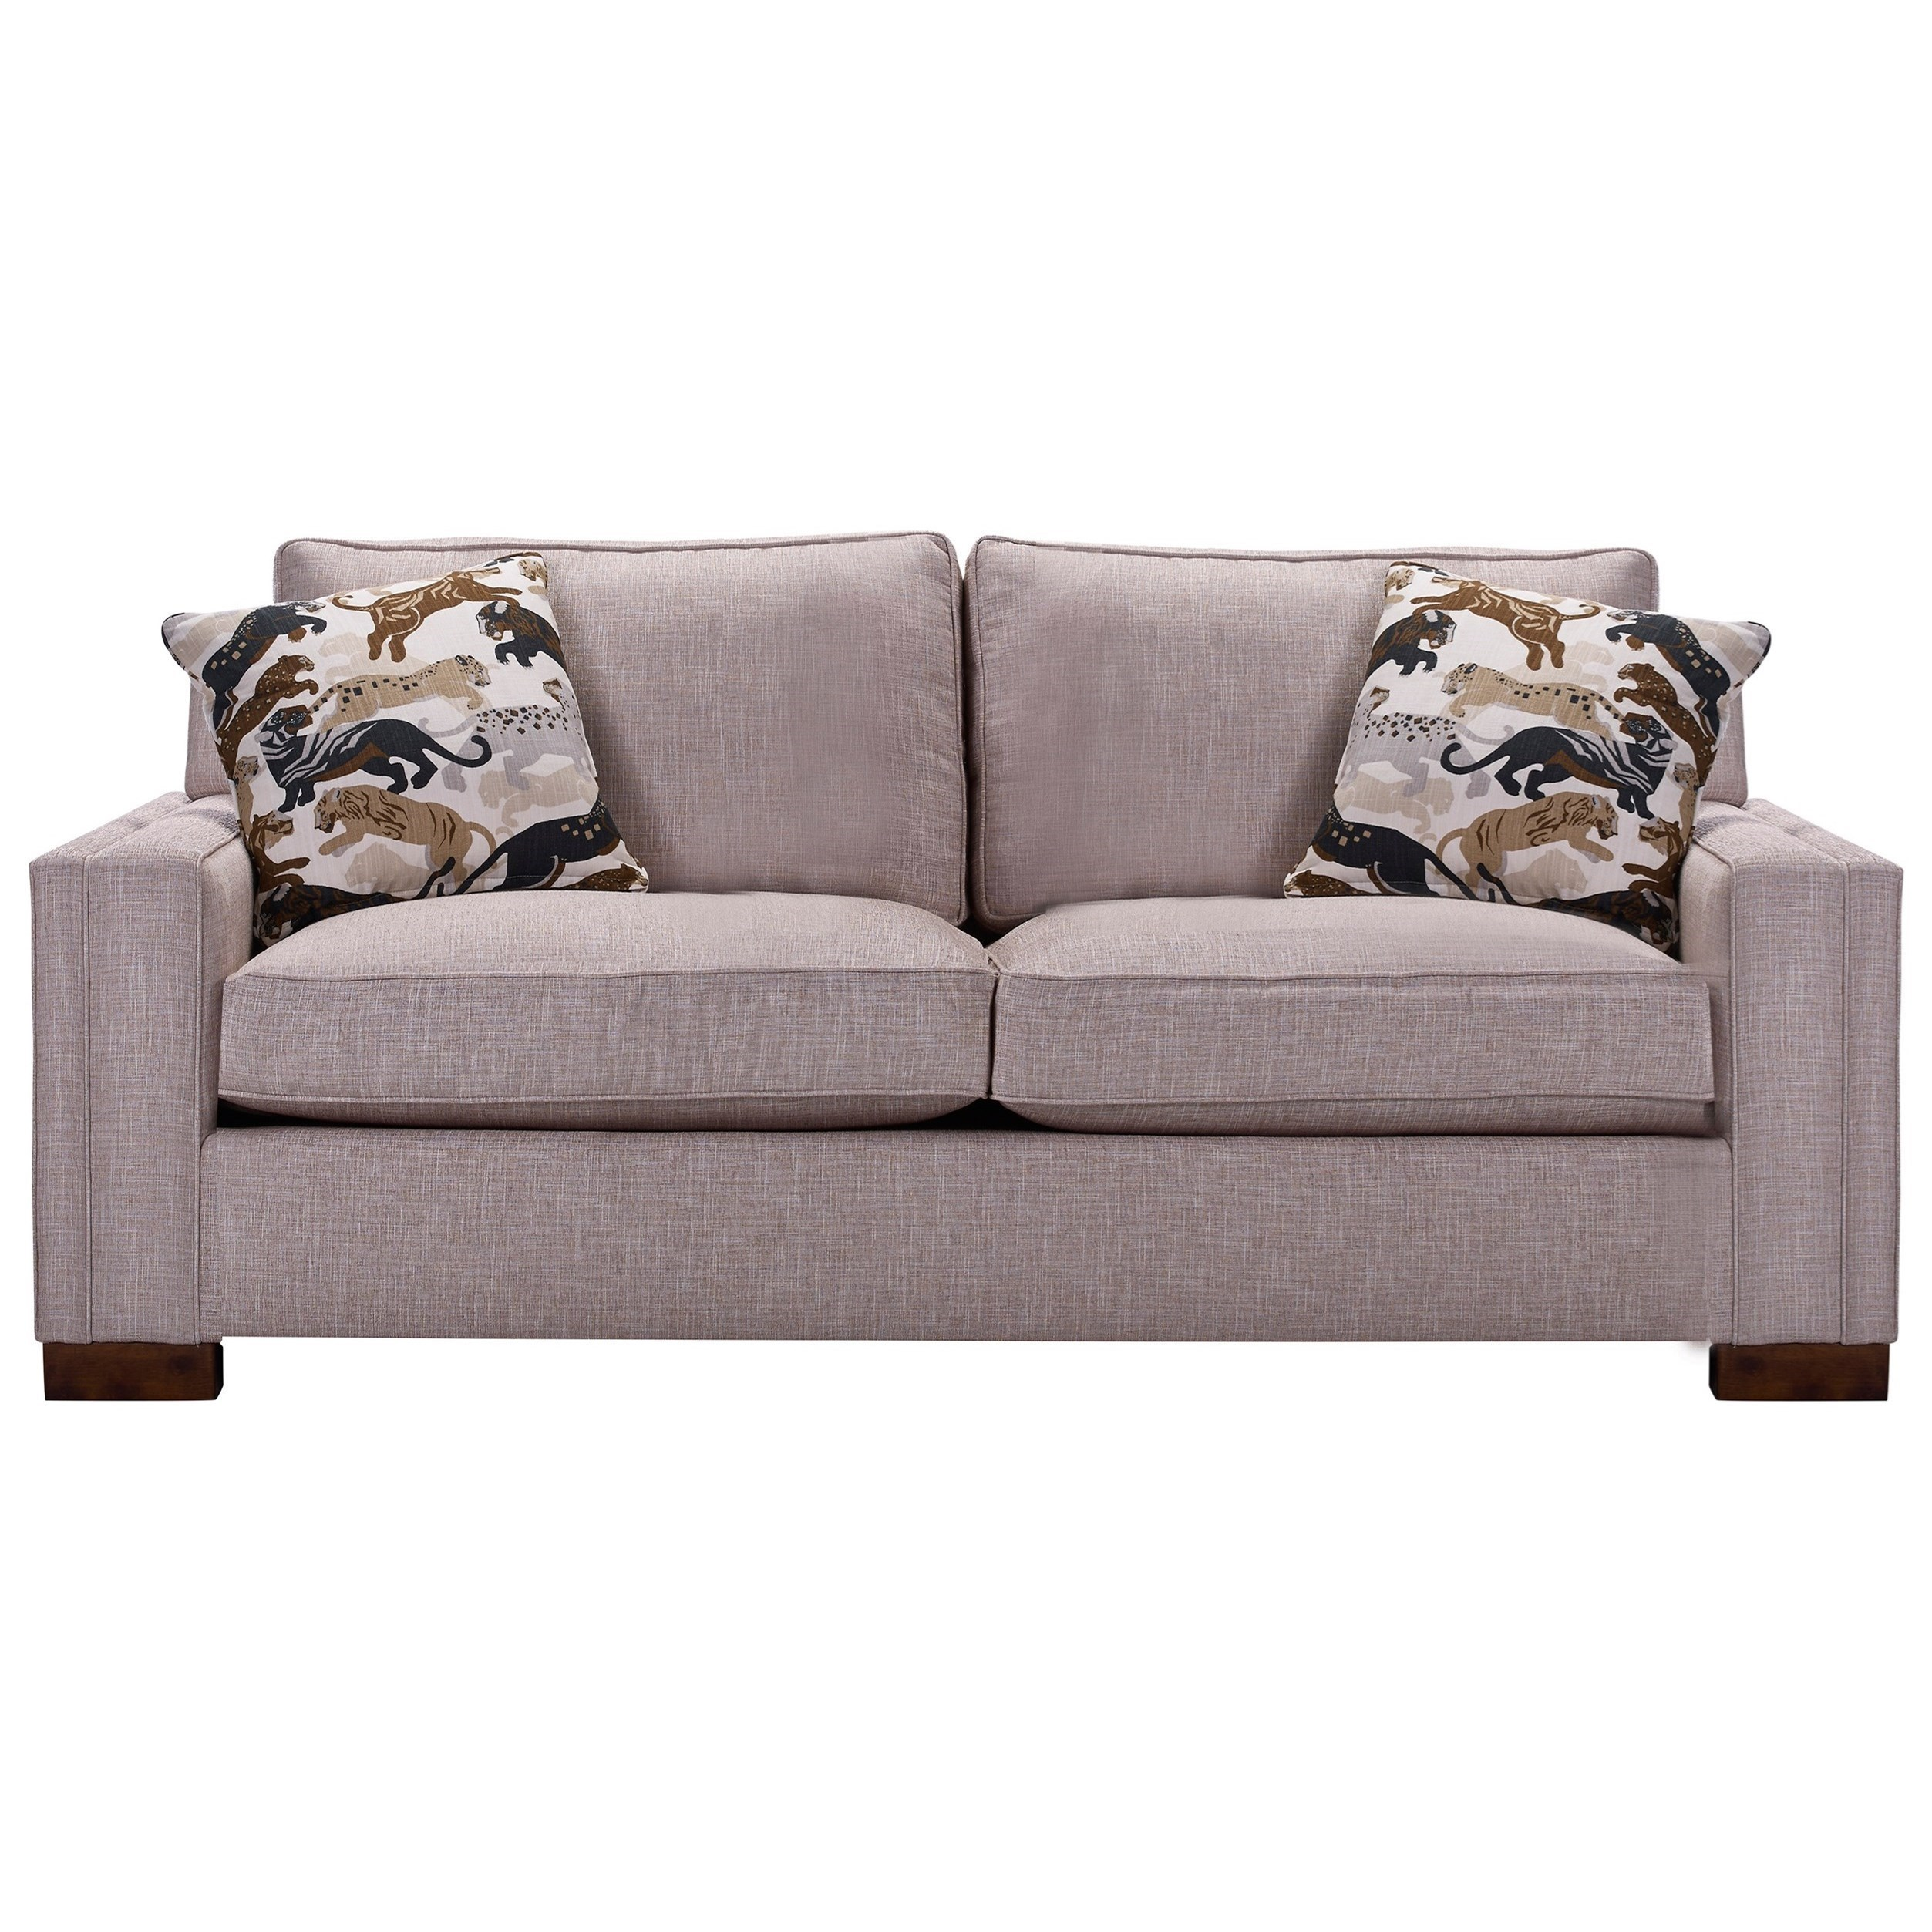 Image Result For Sleeper Sofa Twin Cities